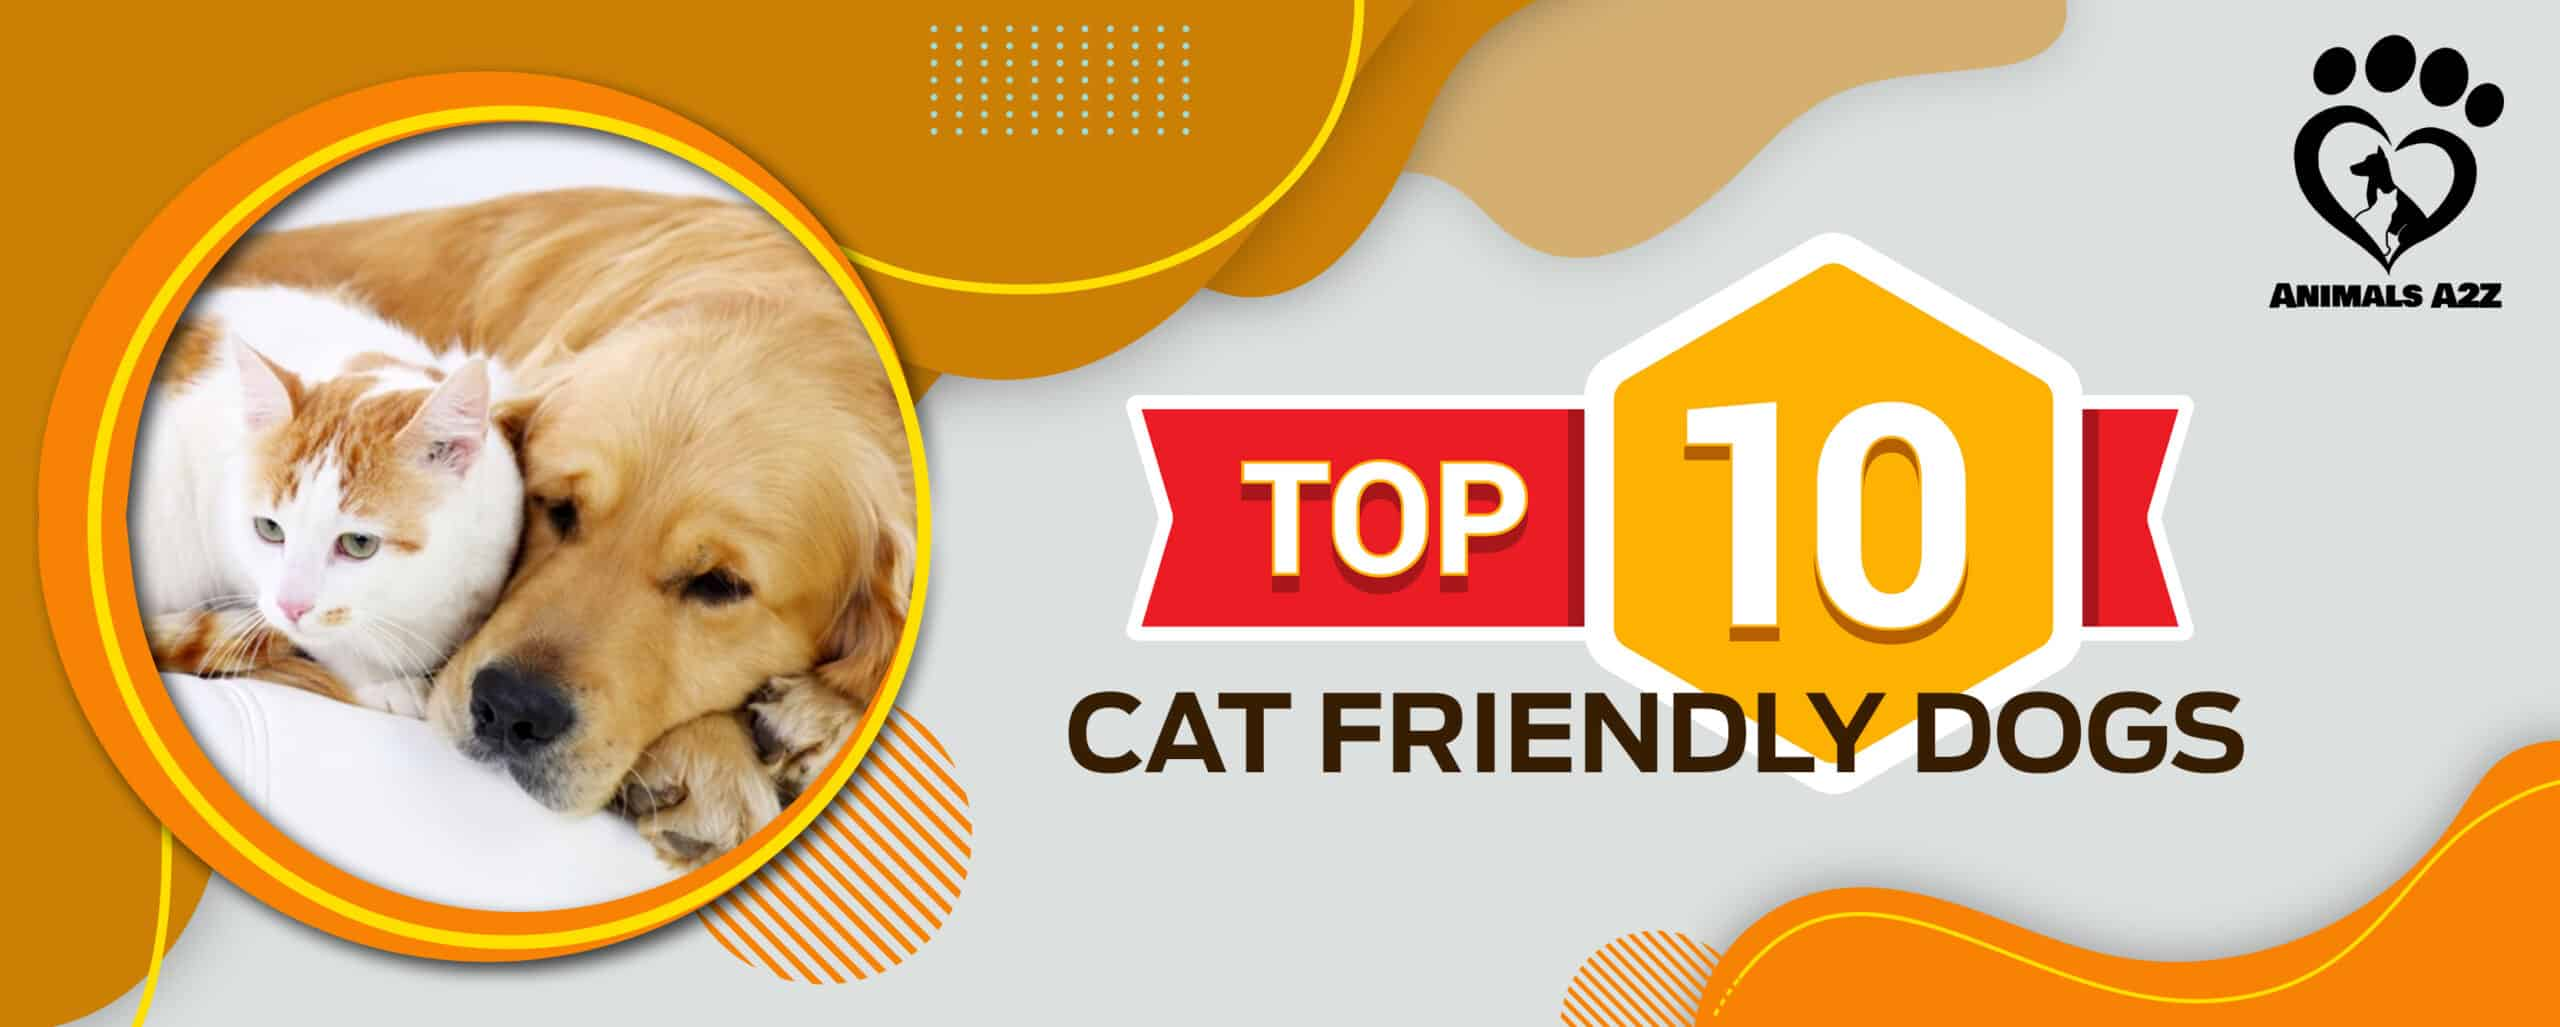 Top 10 Cat-Friendly Dogs